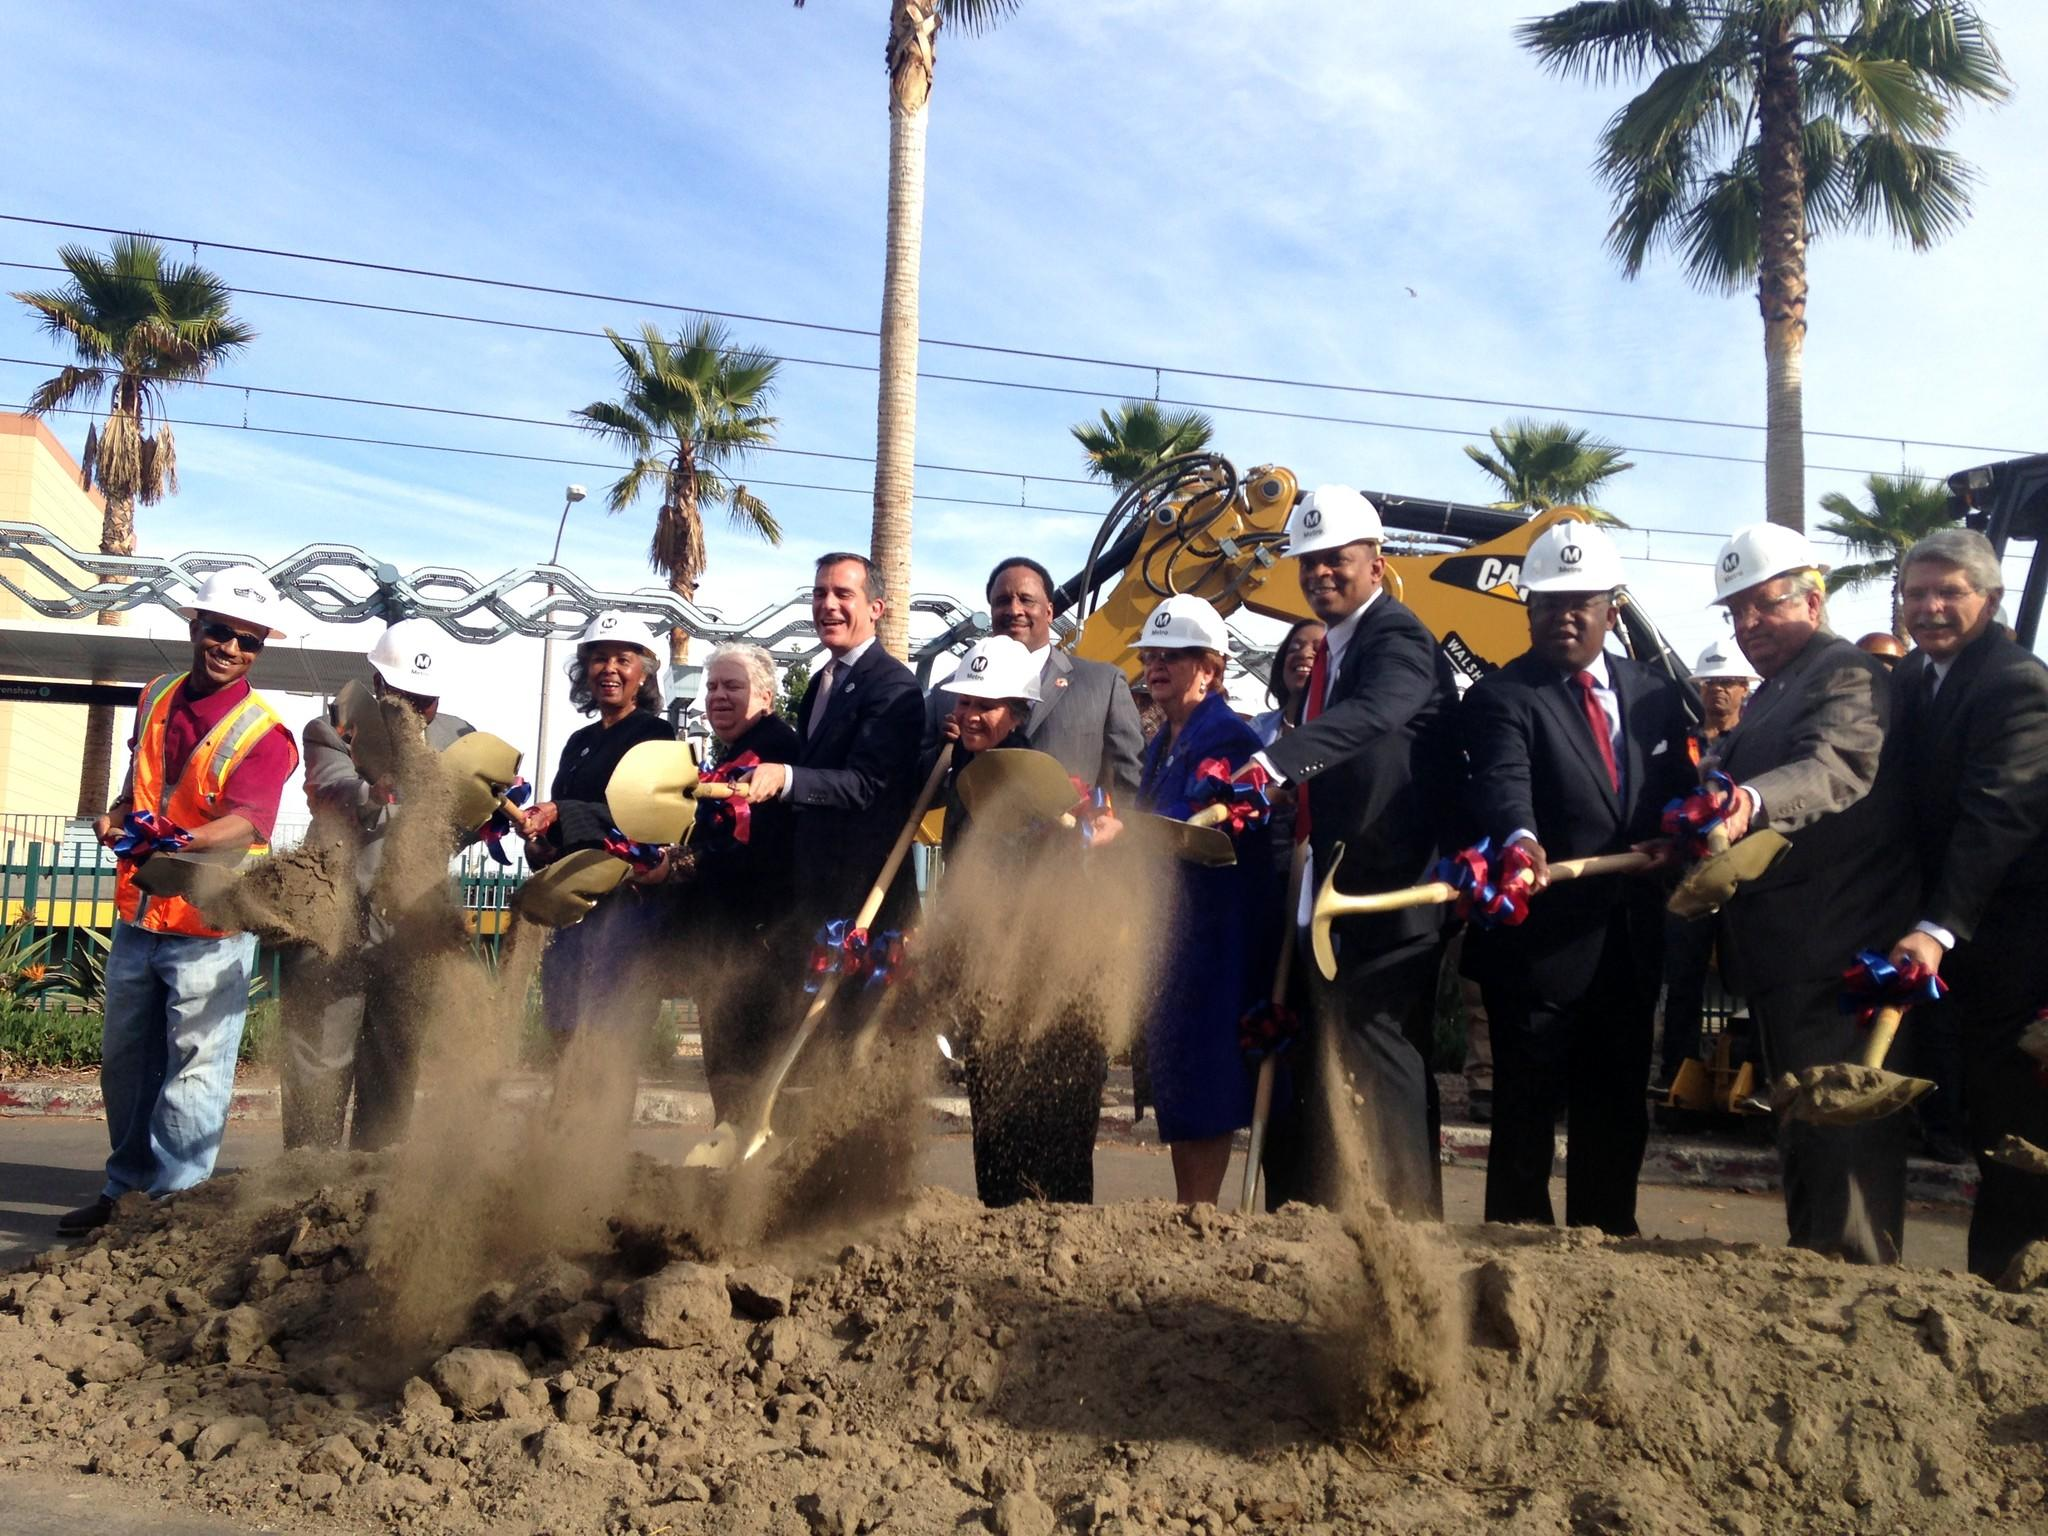 Officials, including Los Angeles Mayor Eric Garcetti and county supervisors, celebrated the groundbreaking of the Crenshaw Line.